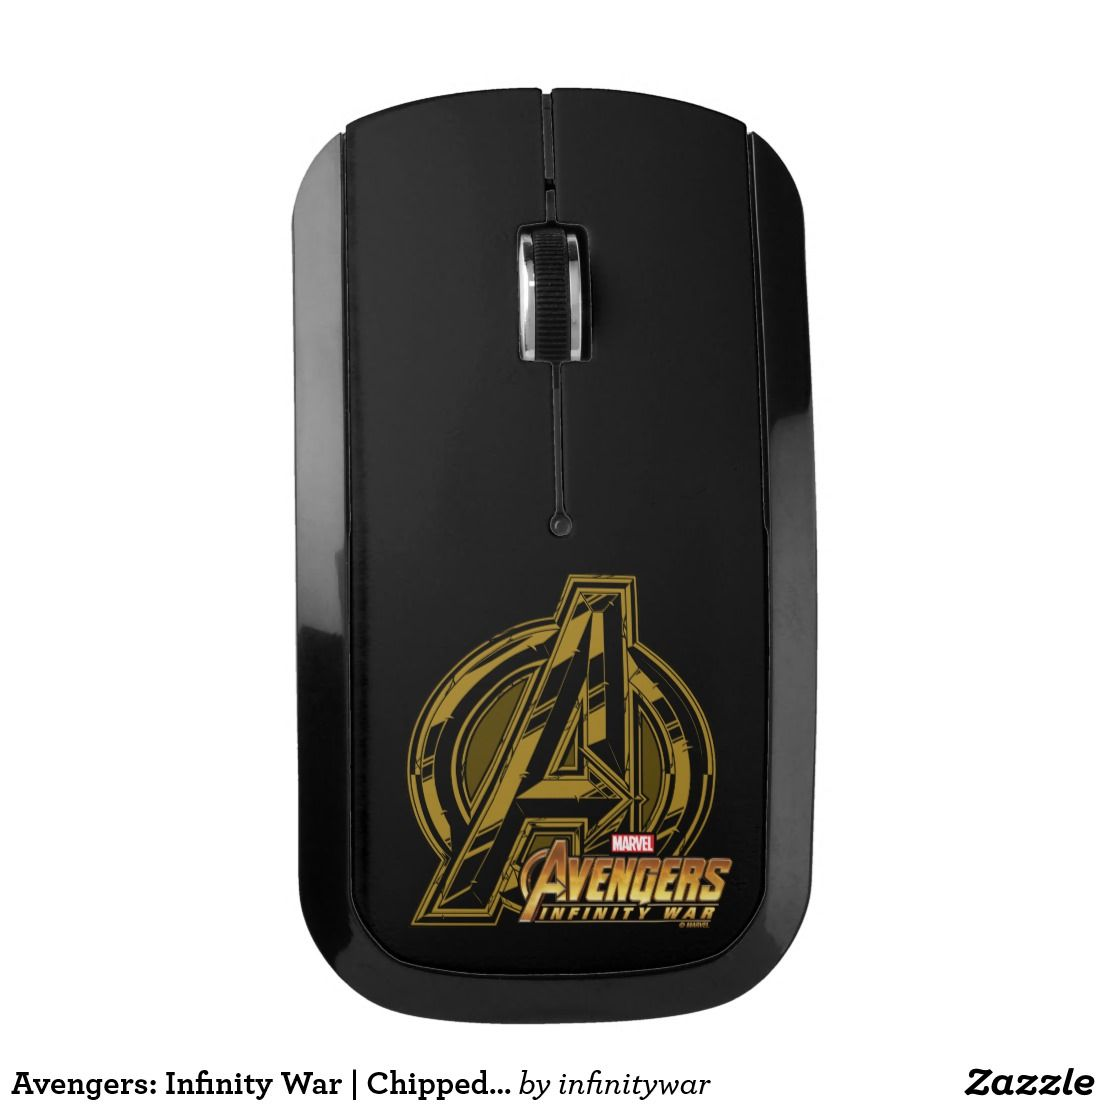 Avengers: Infinity War | Chipped Avengers Icon Wireless Mouse ...